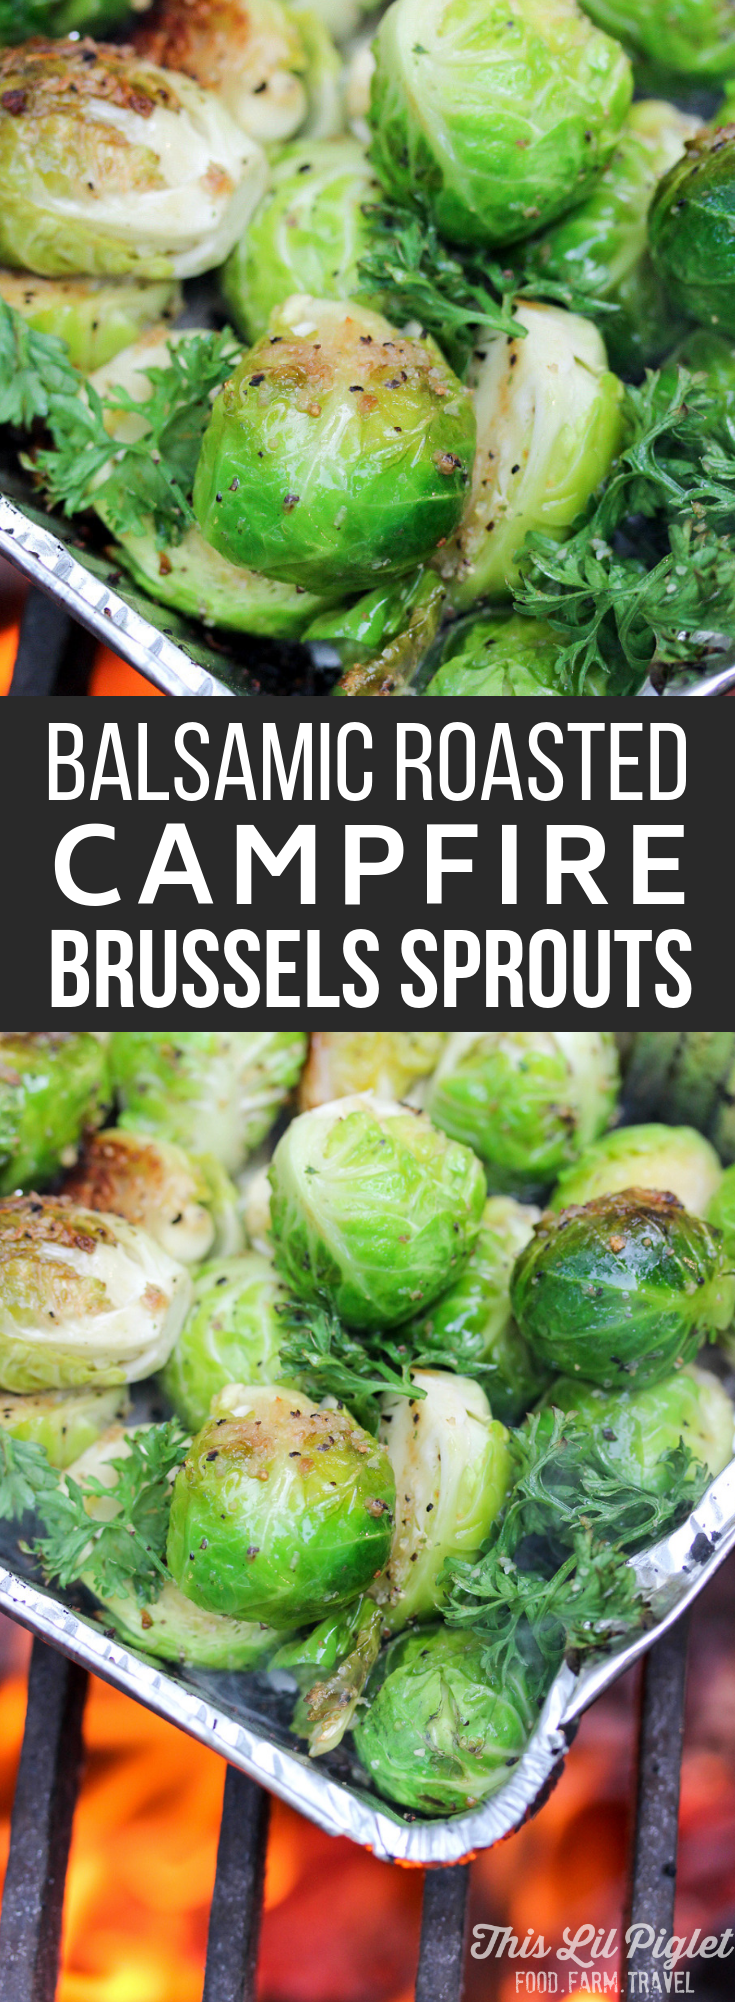 Camping Food: Balsamic Roasted Campfire Brussels Sprouts // thislilpiglet.net